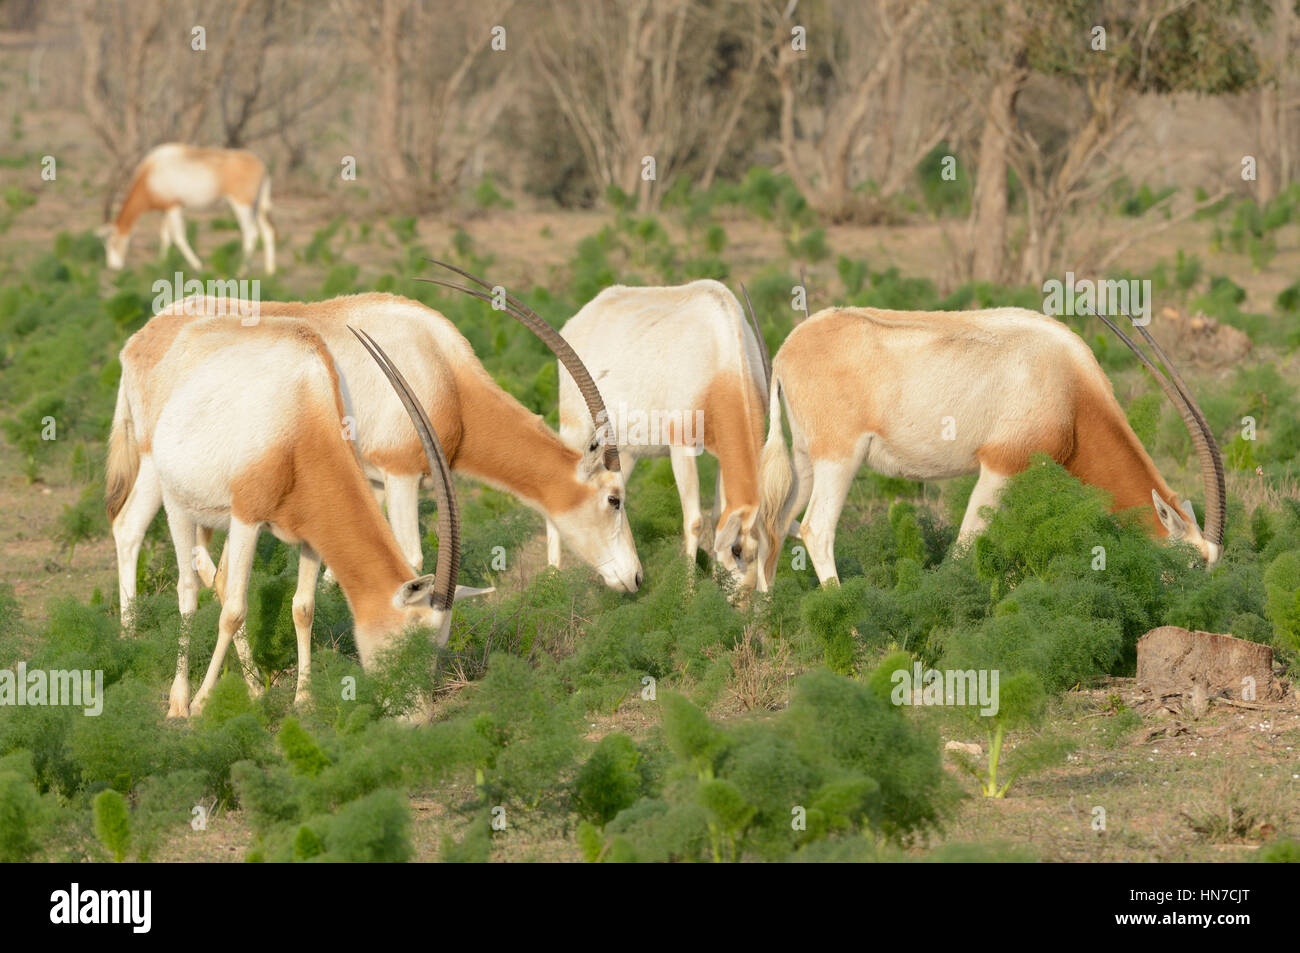 Scimitar-horned Oryx Oryx dammah Extinct in the wild These animals held in huge natural enclosures in Souss Massa - Stock Image